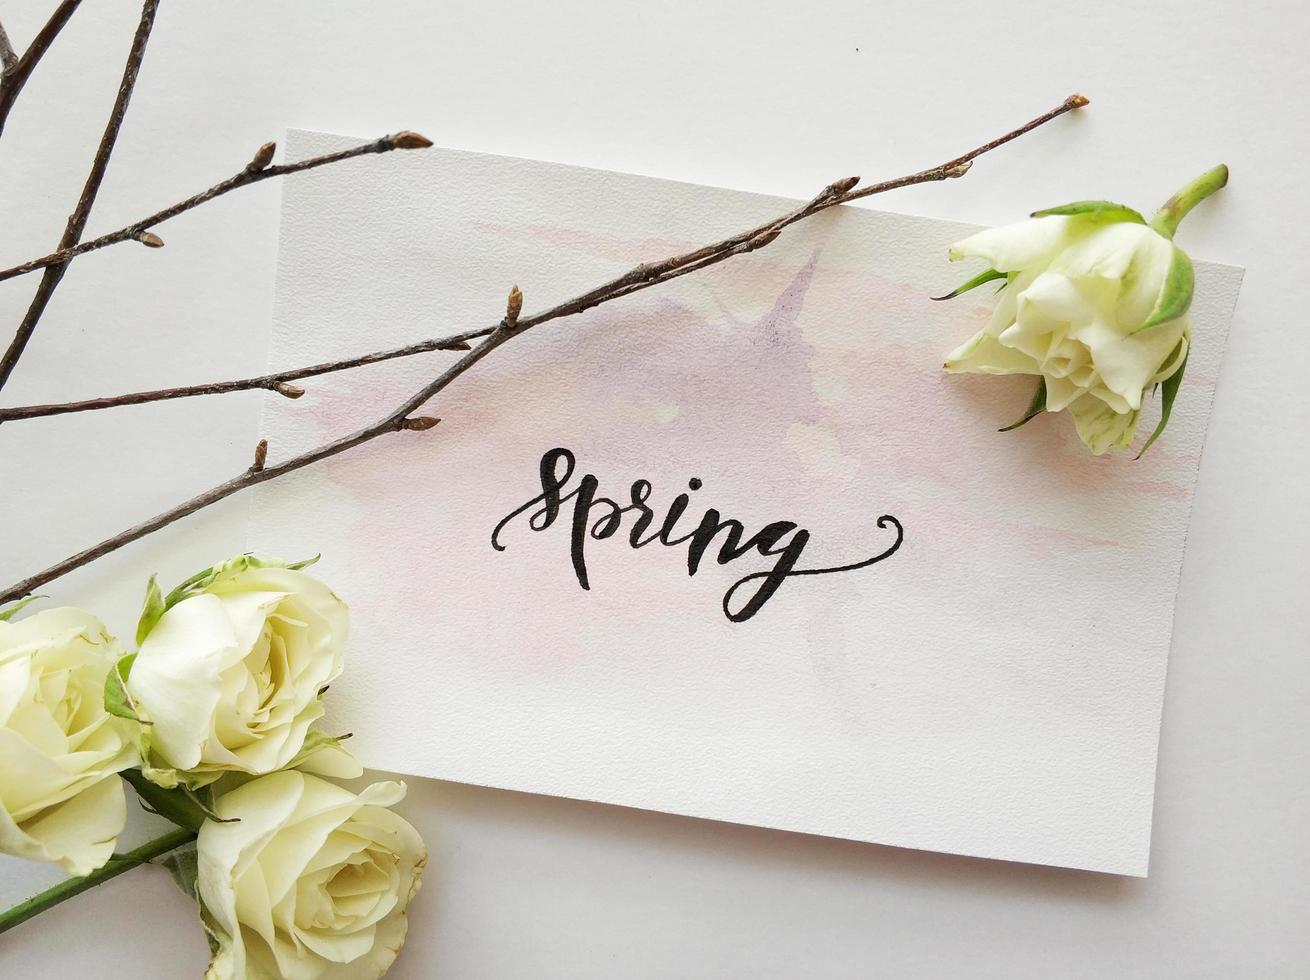 Spring sign with white flowers photo